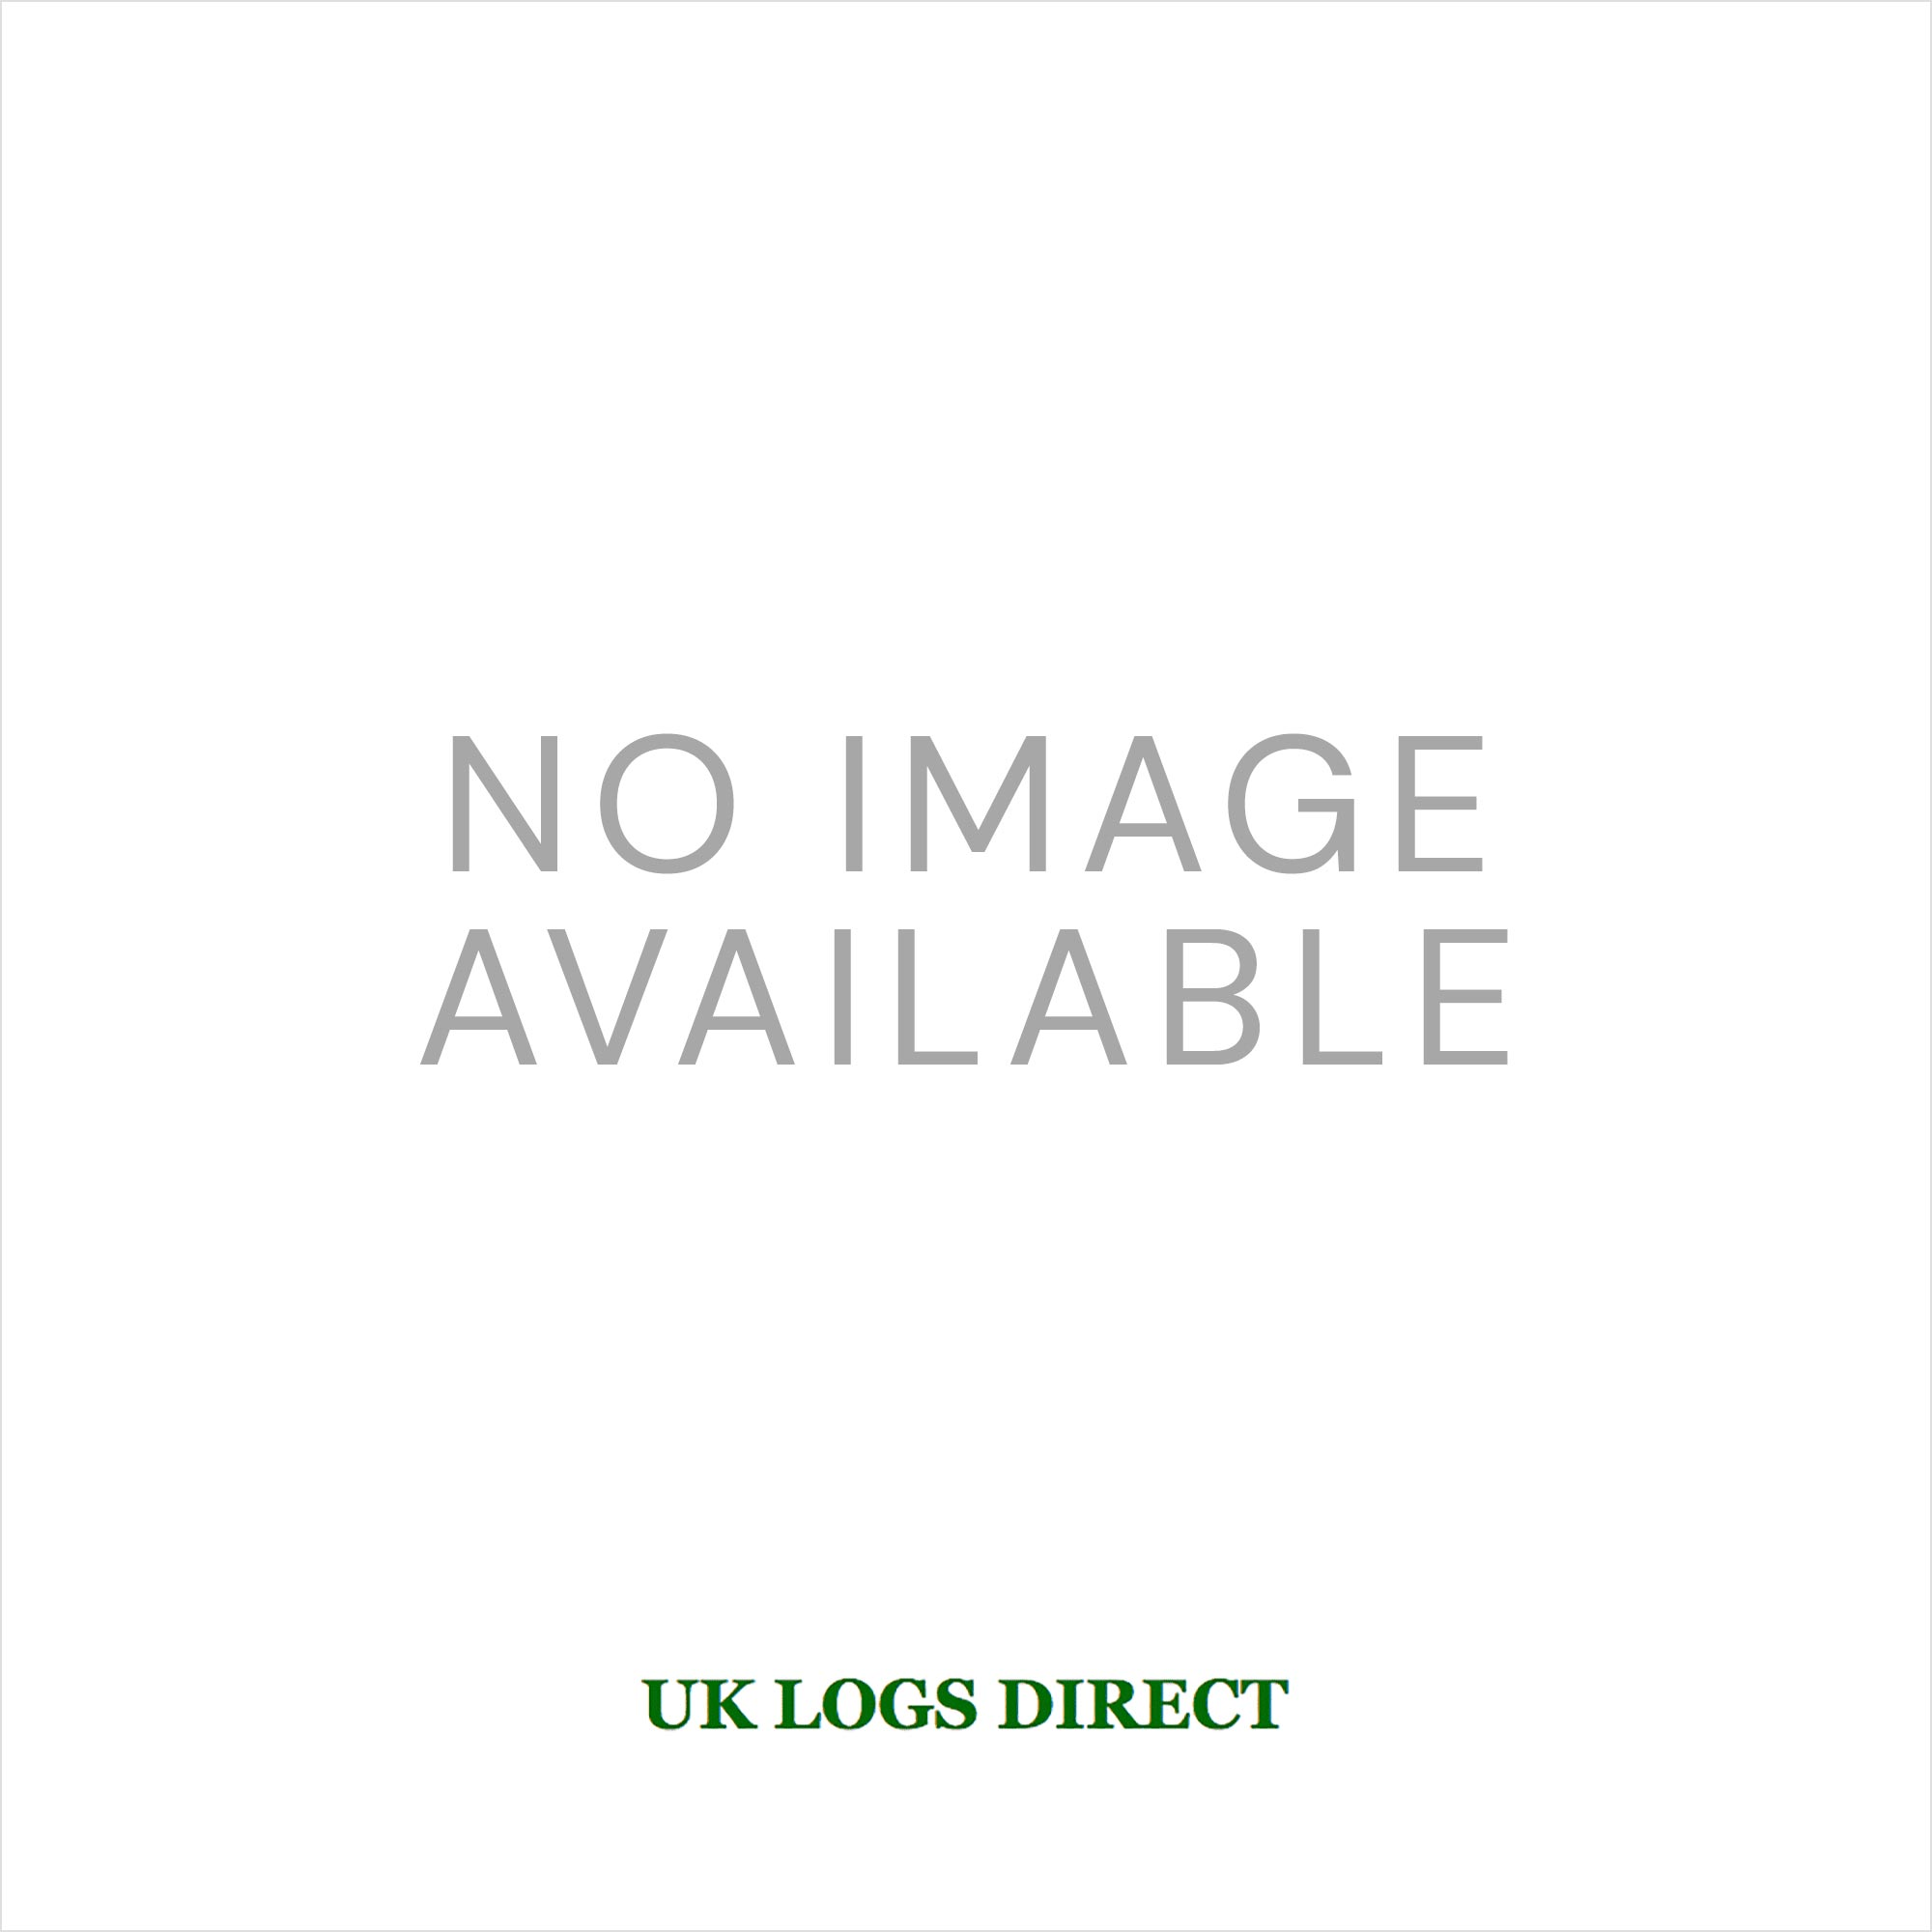 Kiln Dried BIRCH Logs In Three Vented Barrow Bags Perfect For Restricted Access